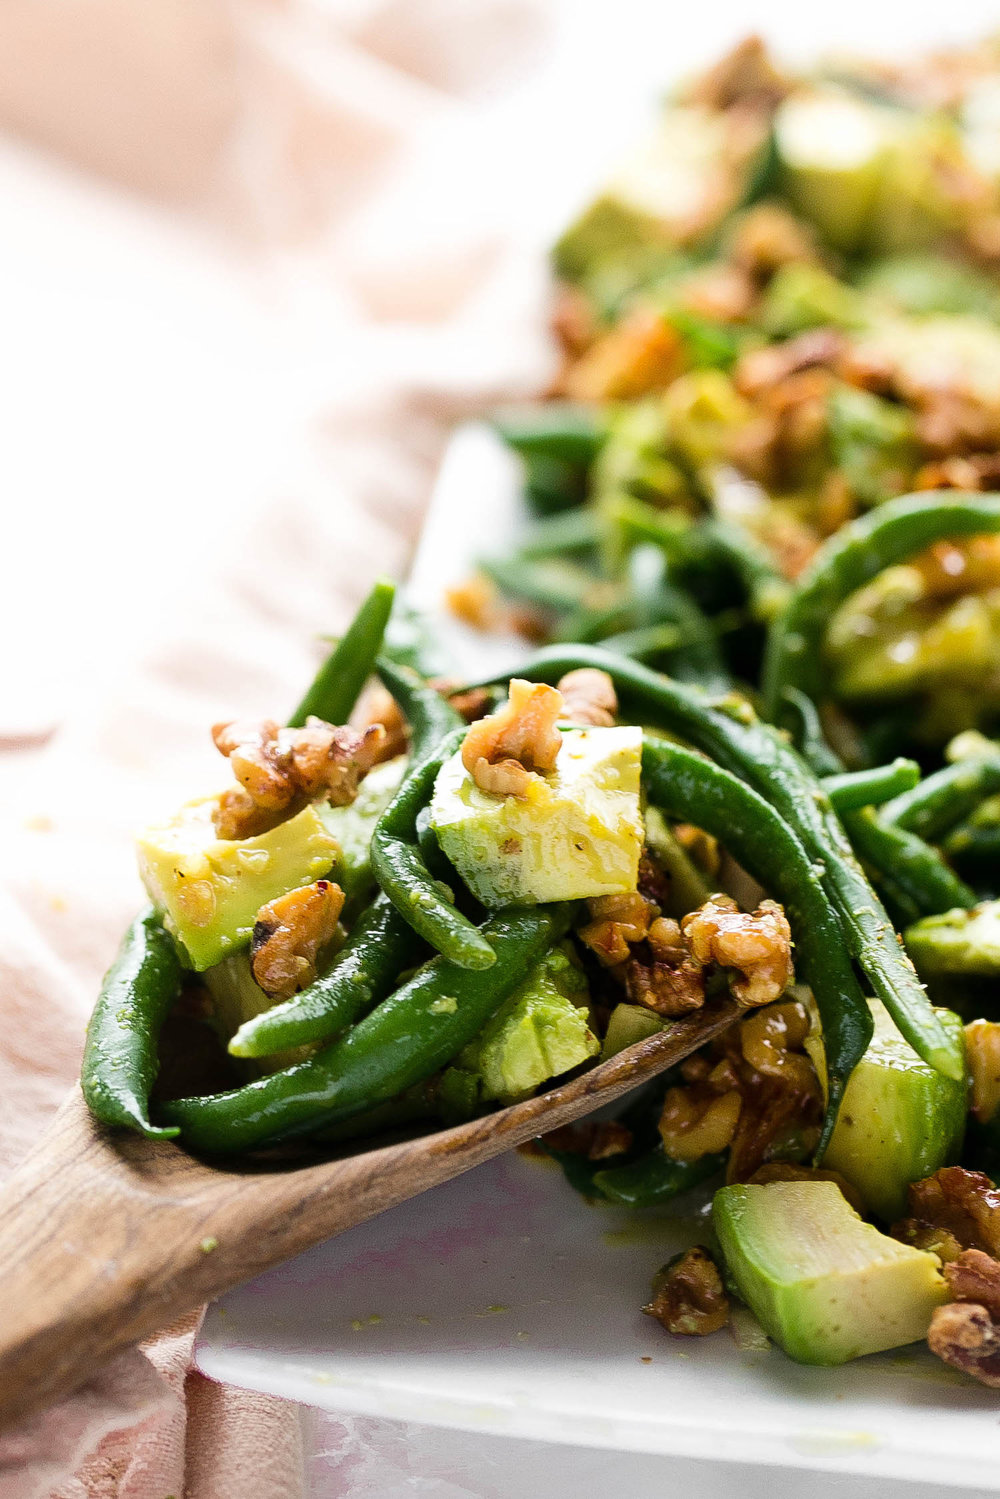 Honey Dijon Avocado Green Beans: crisp green beans with cubed avocado and toasted walnuts, tossed in a honey Dijon dressing. | TrufflesandTrends.com